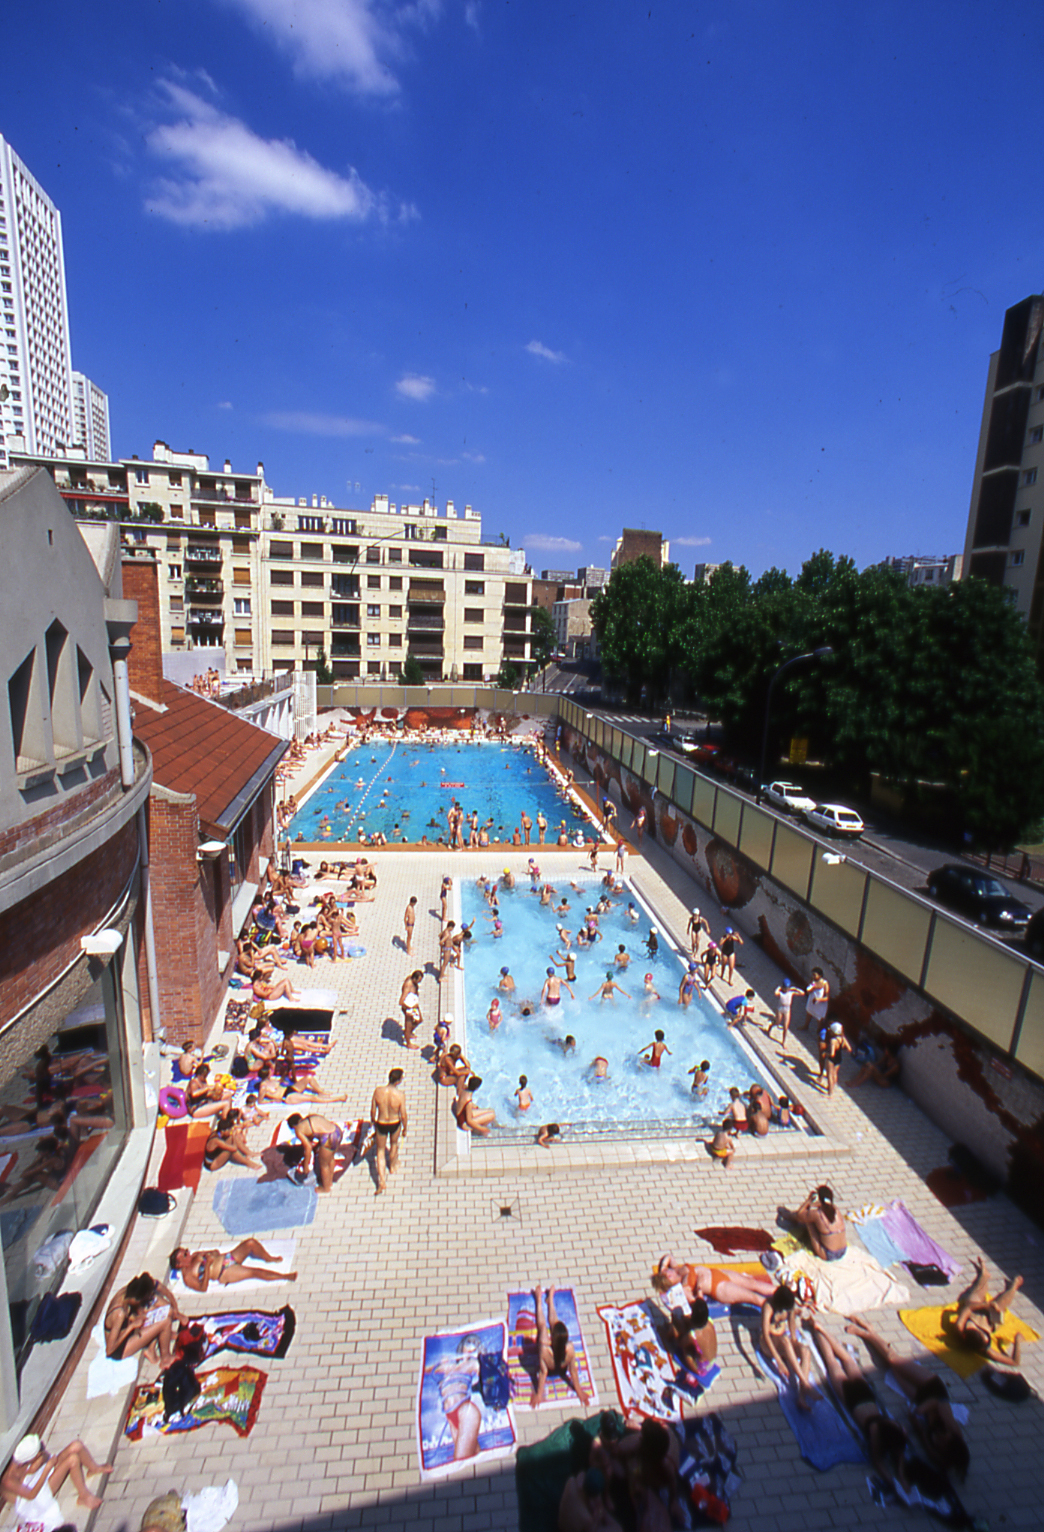 Piscine Butte-Aux-Cailles | Sport And Fitness In Butte-Aux ... à Piscine La Butte Aux Cailles